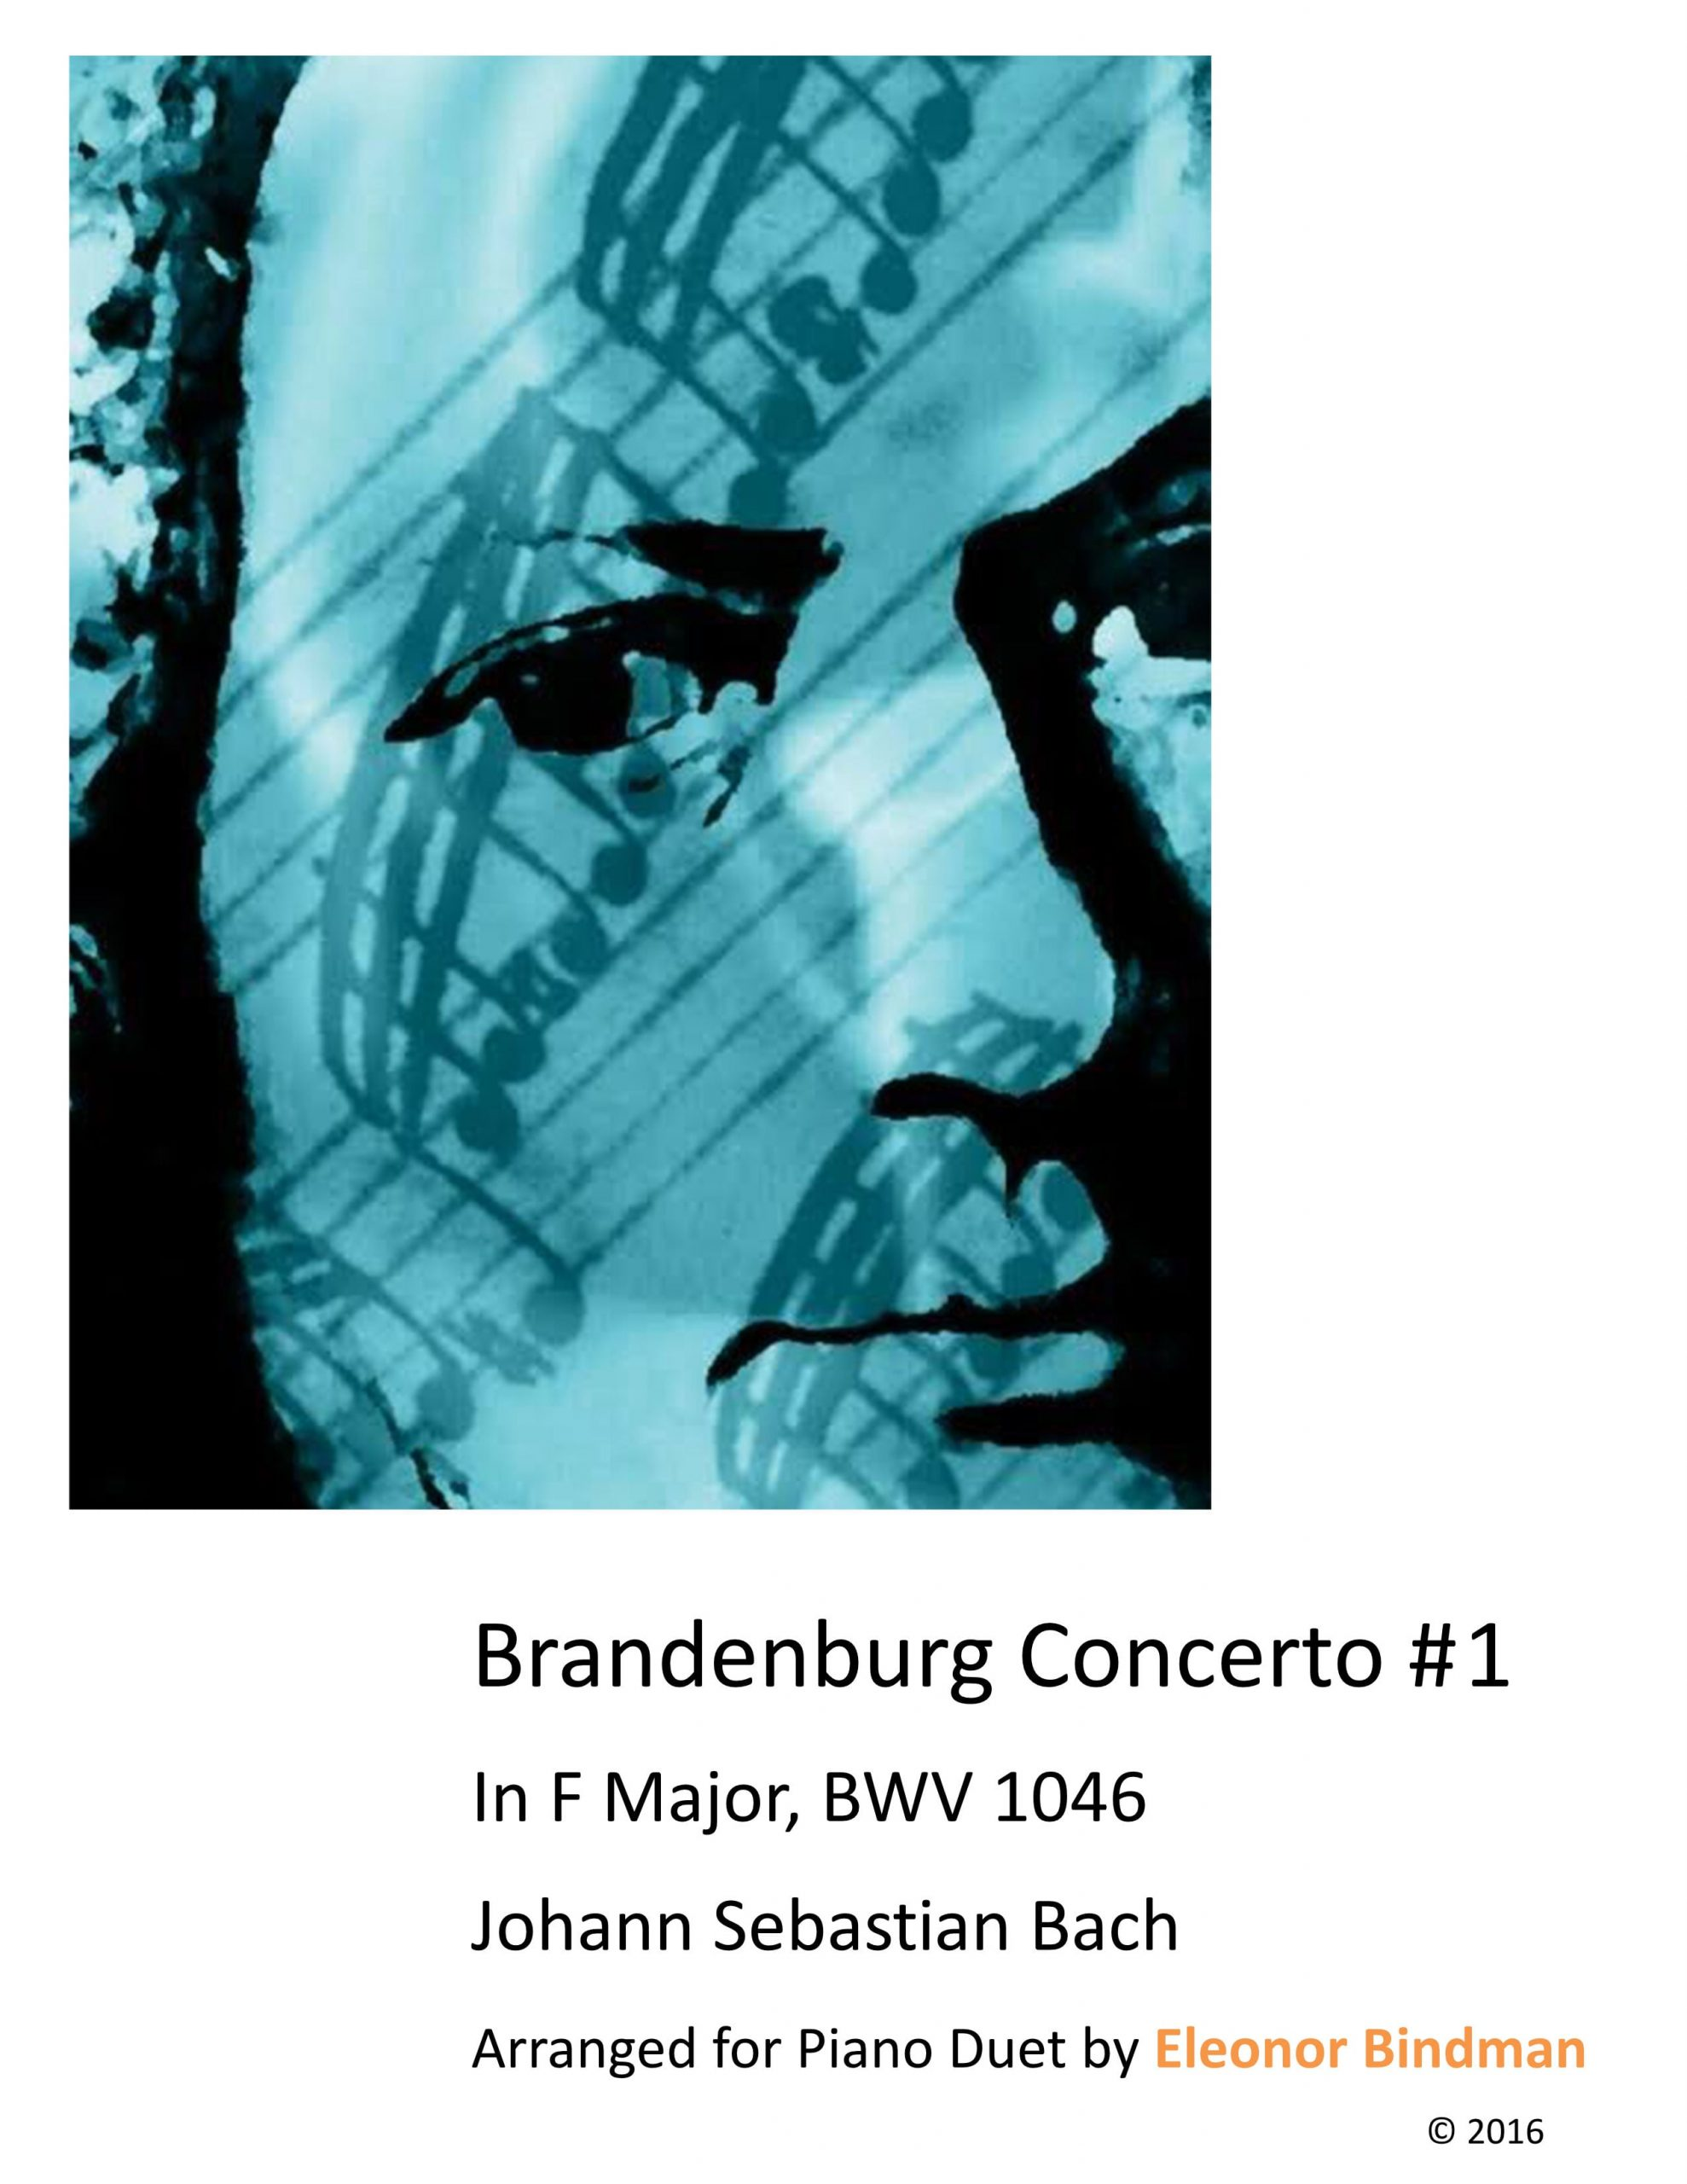 Brandenburg Concerto No. 1 Arranged for Piano Duet